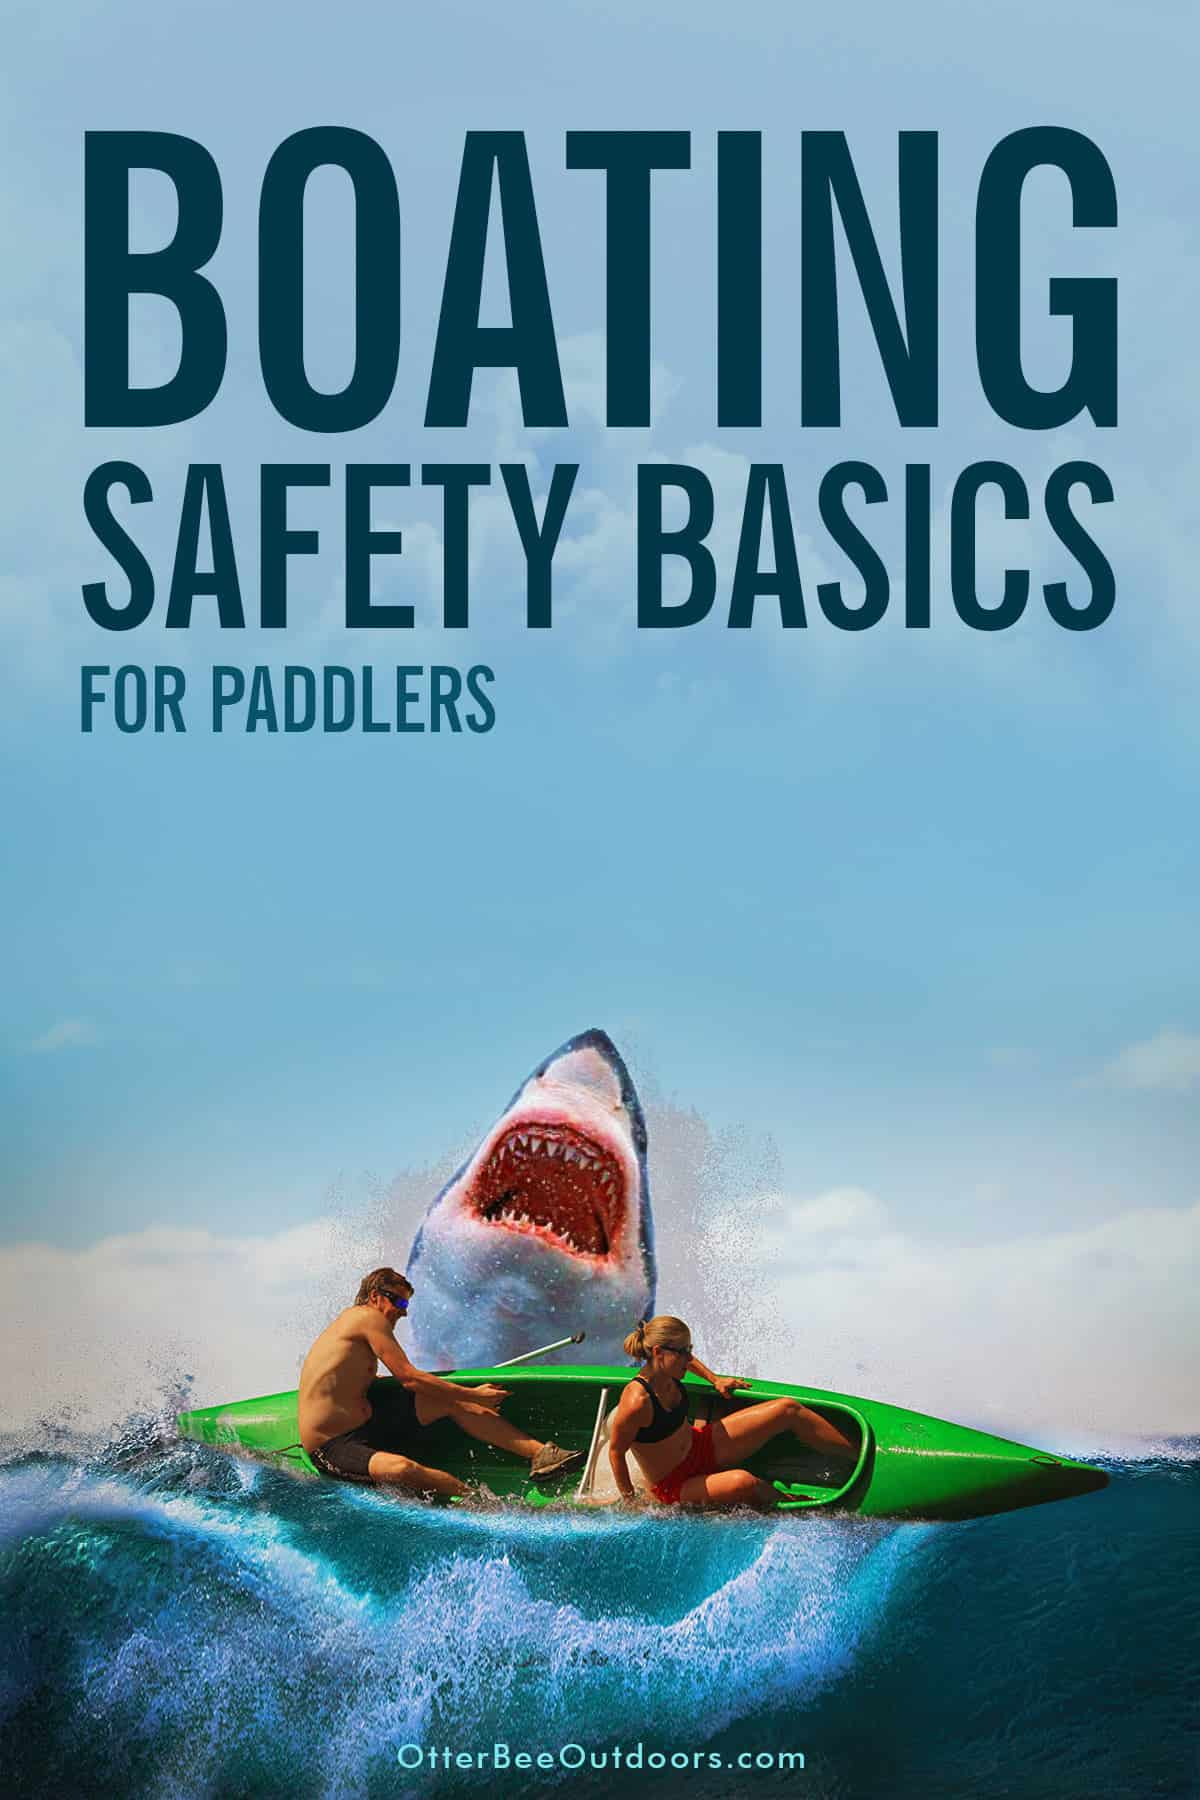 A man and woman in a kayak not practicing basic boating safety of wearing a PDF capsize in the ocean when attacked by a shark. Graphic says... Boating Safety Basics for Paddlers.